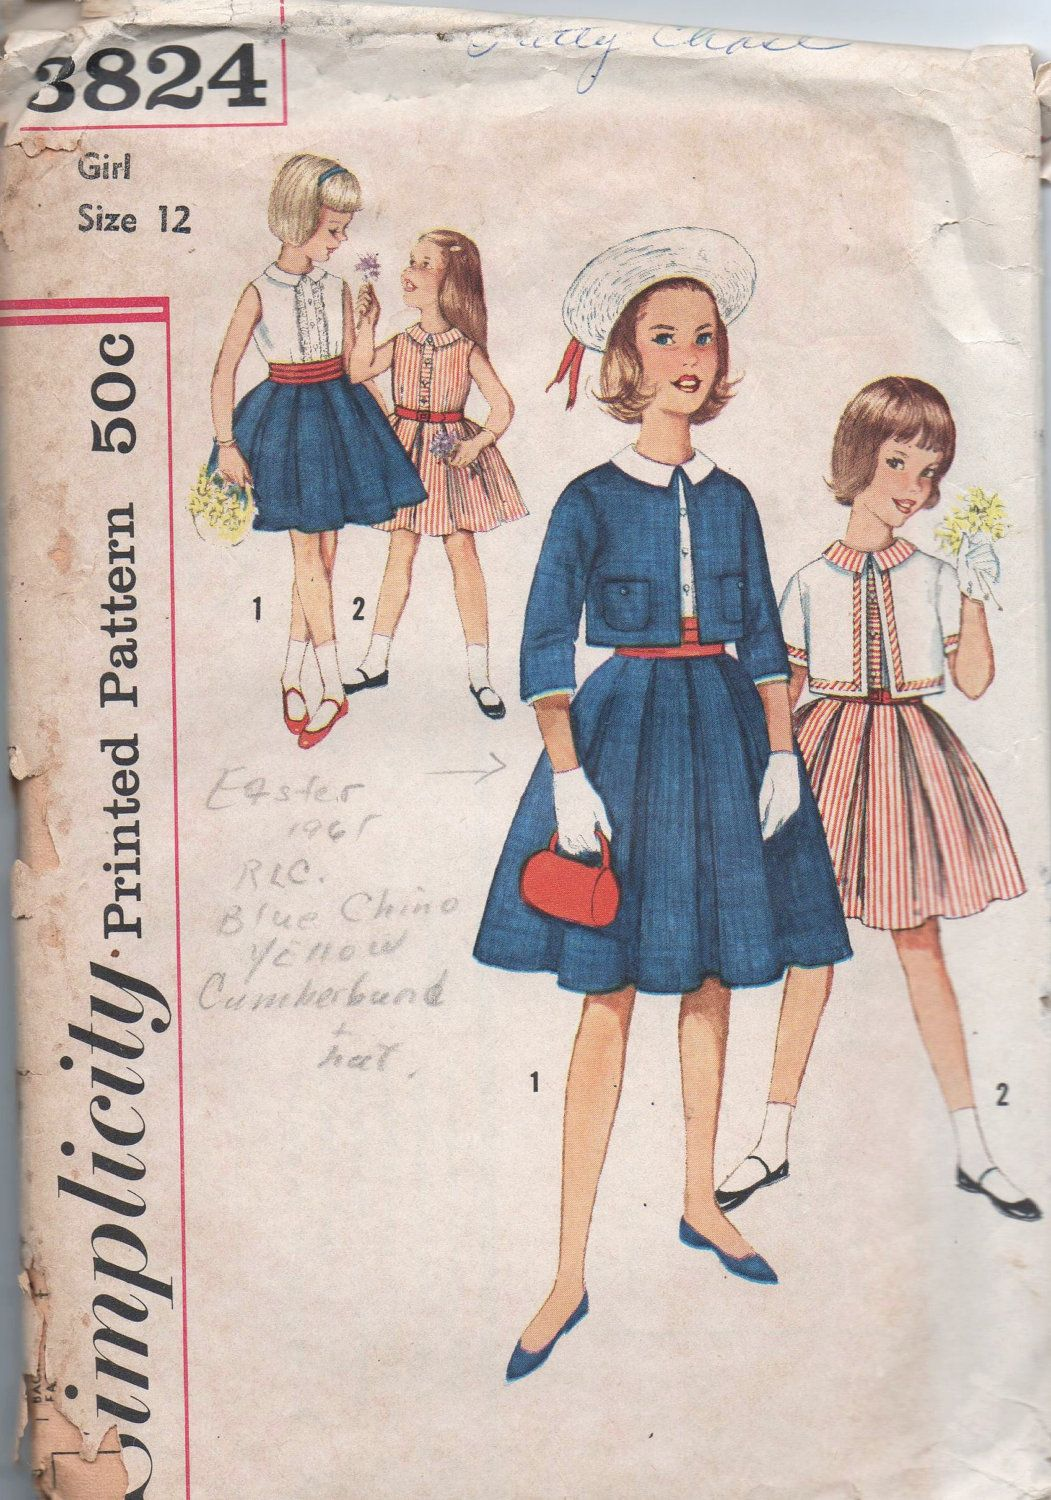 1960s vintage pattern Simplicity 3824 size 12 breast by GreatScott on etsy